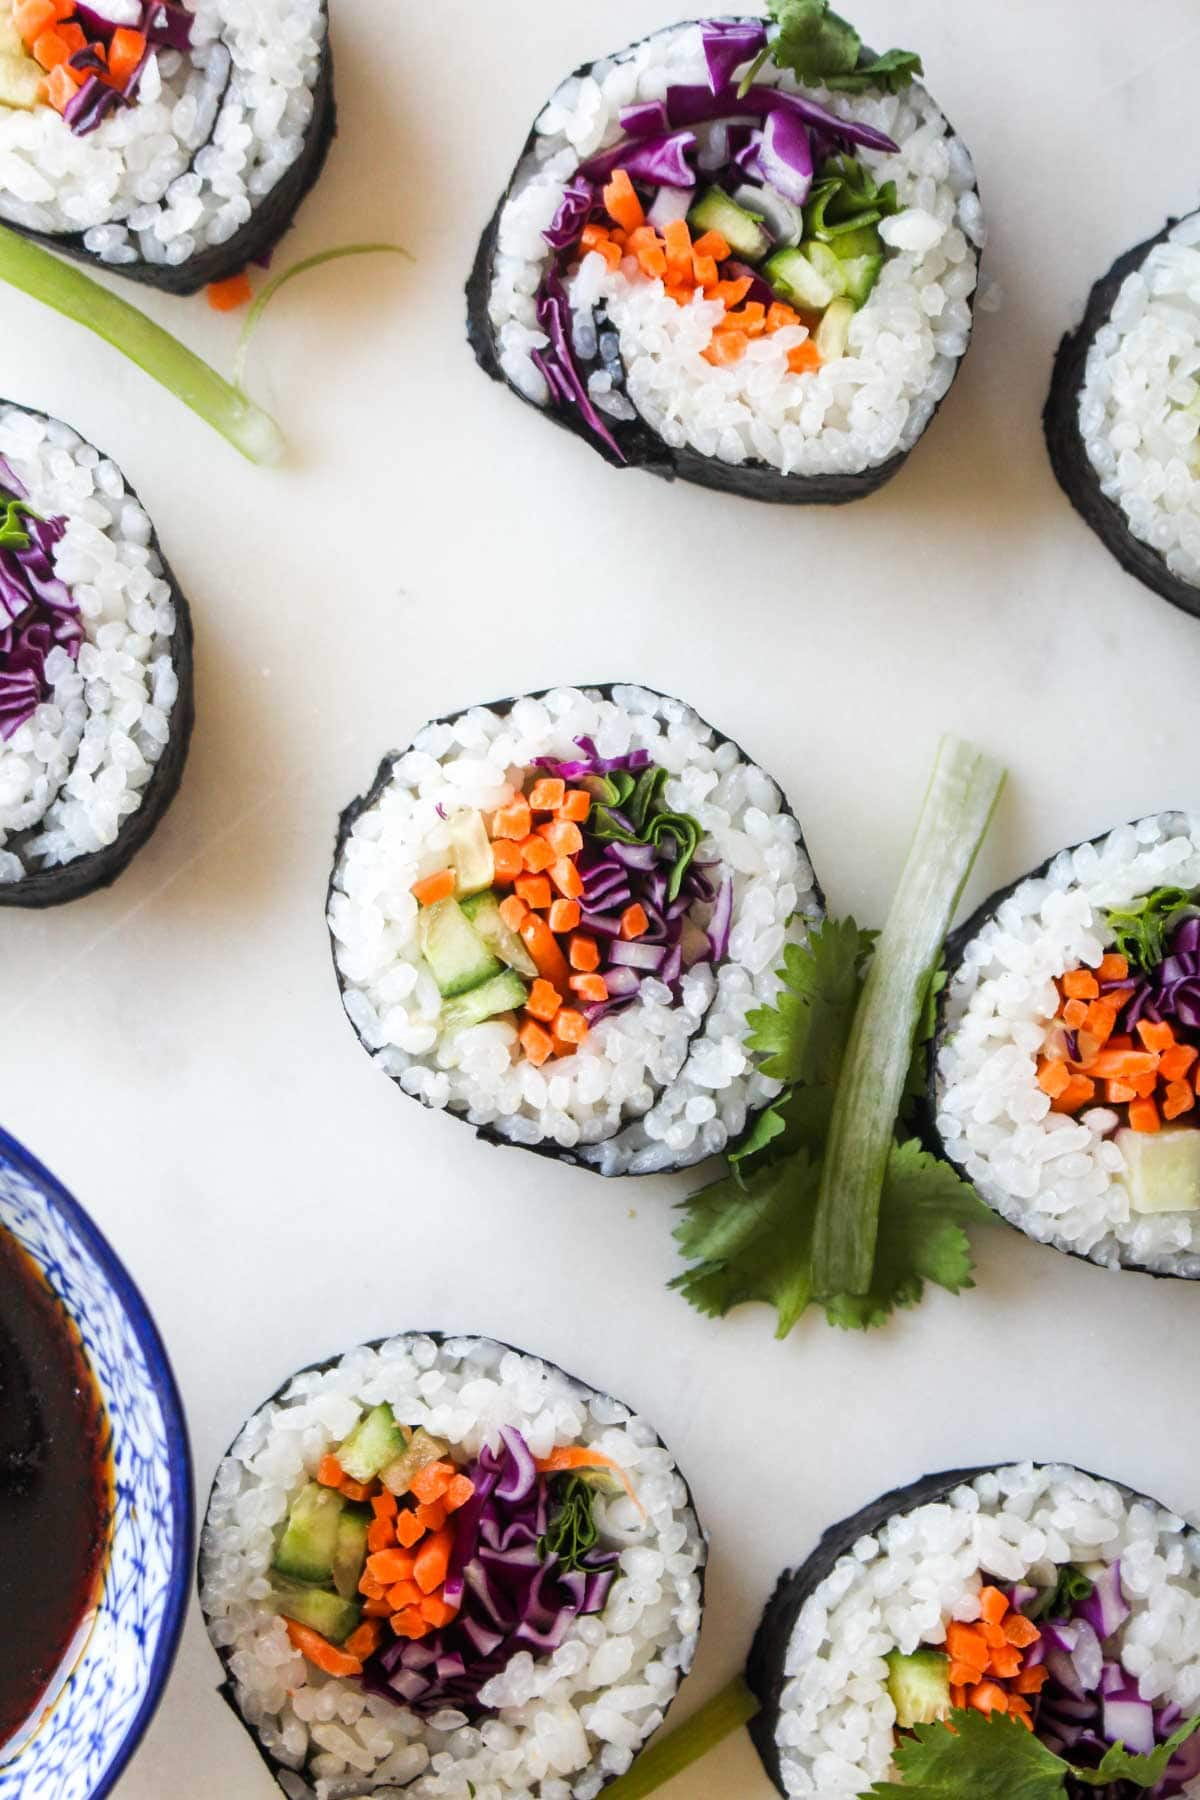 Homemade Veggie Sushi is easier than you think! Customize your roll with your favorite veggies and wow your friends by bringing the sushi bar home with this vegan and gluten free recipe. | CatchingSeeds.com